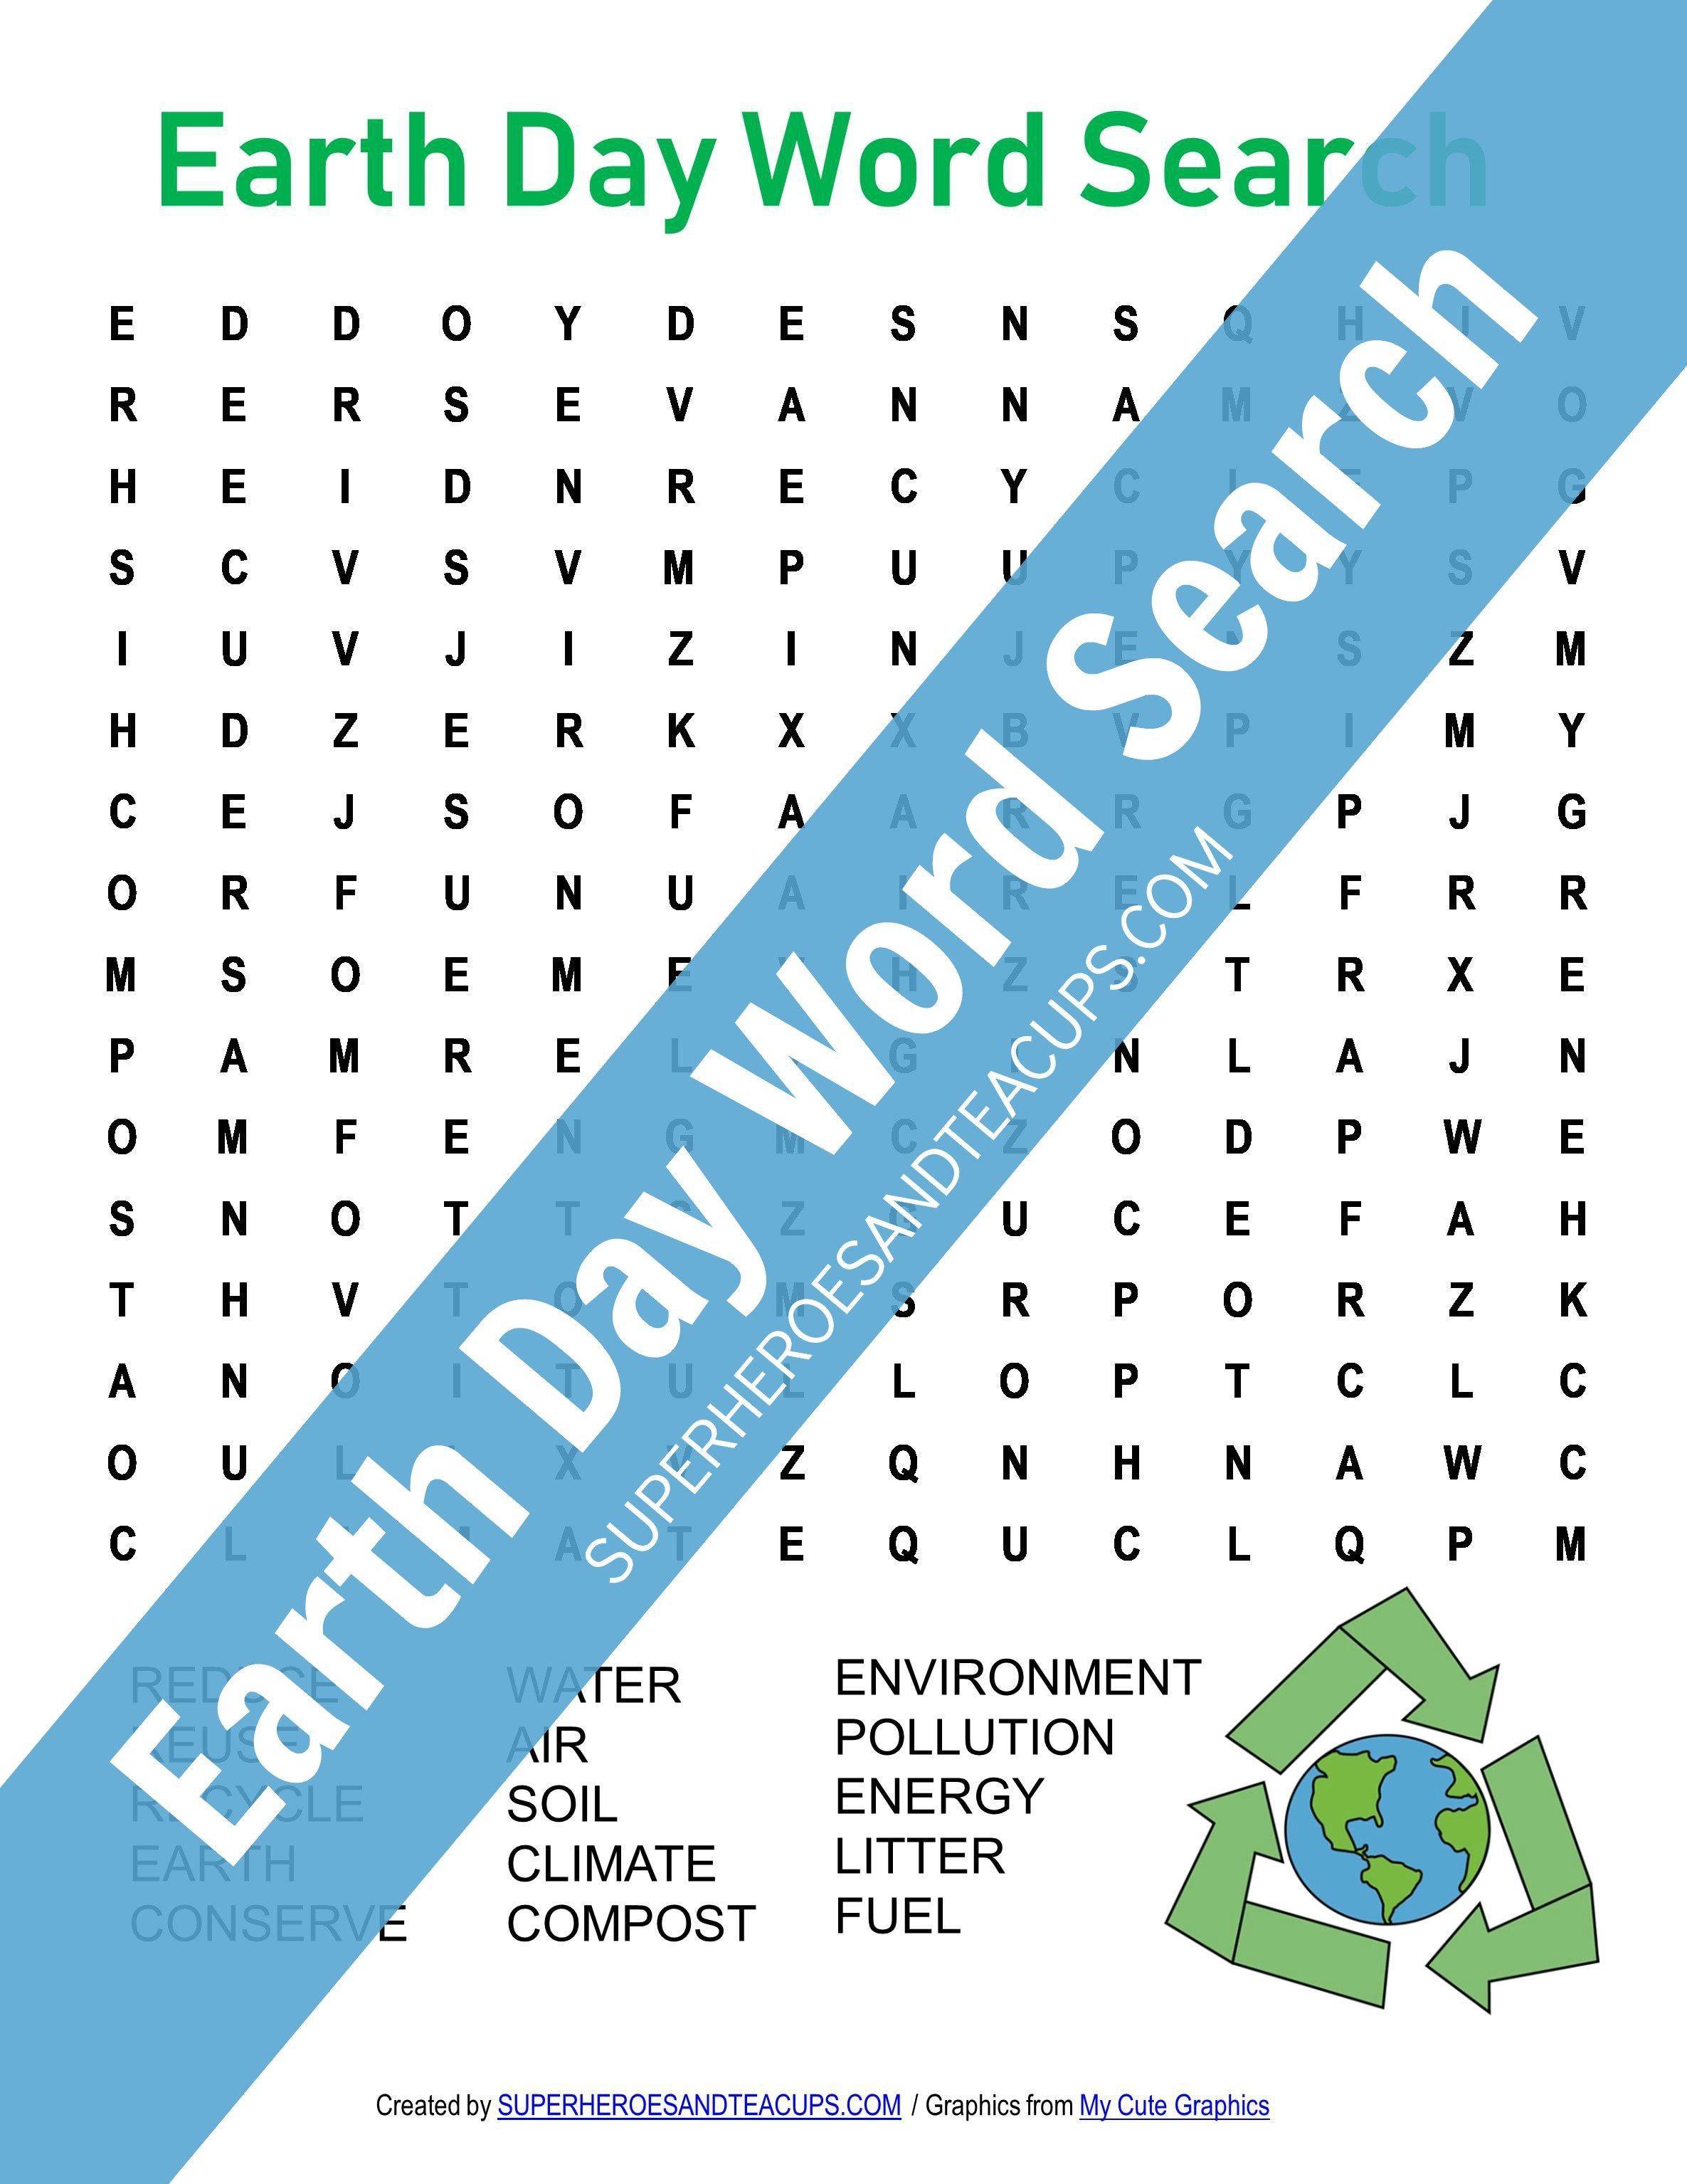 Earth Day Word Search Free Printable for Kids